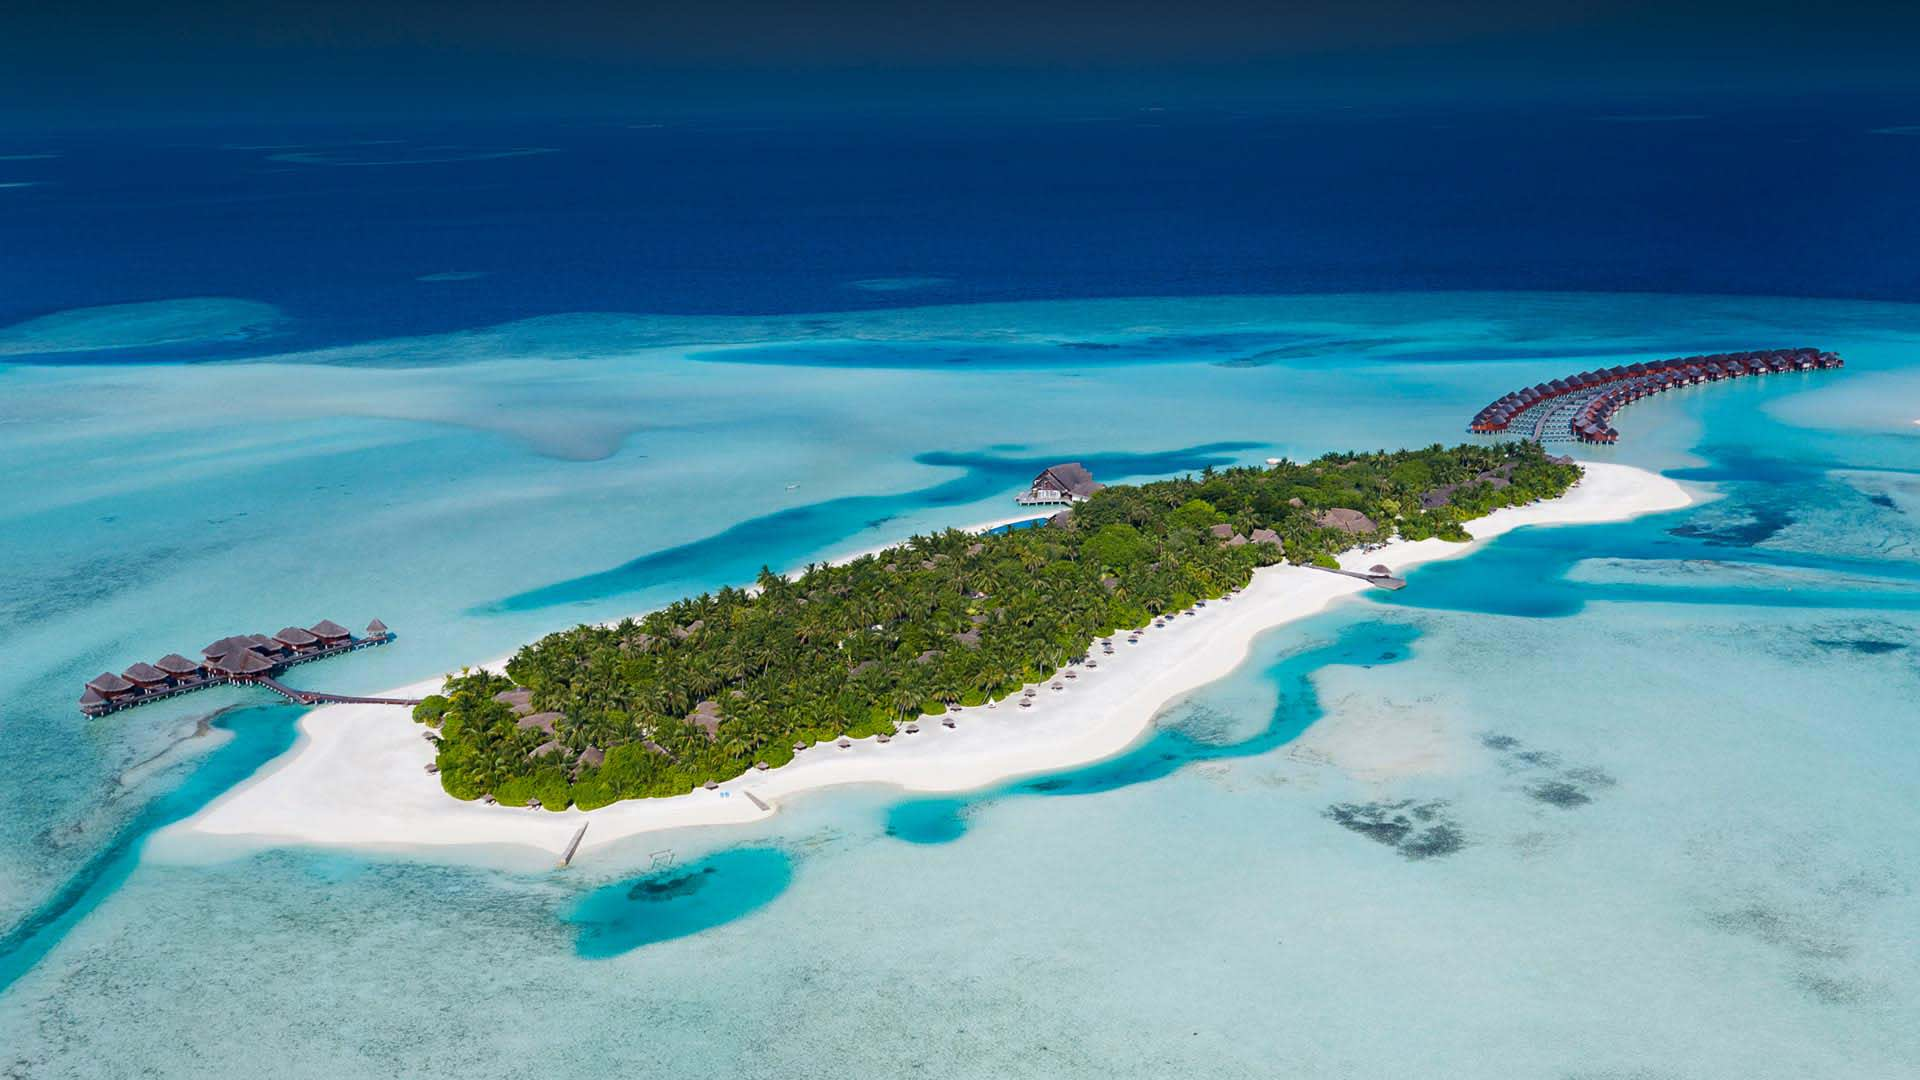 https://assets.anantara.com/image/upload/q_auto,f_auto/media/minor/anantara/images/anantara-dhigu-maldives-resort/the-resort/anantara_dhigu_island_aerial_header_1920x1080.jpg